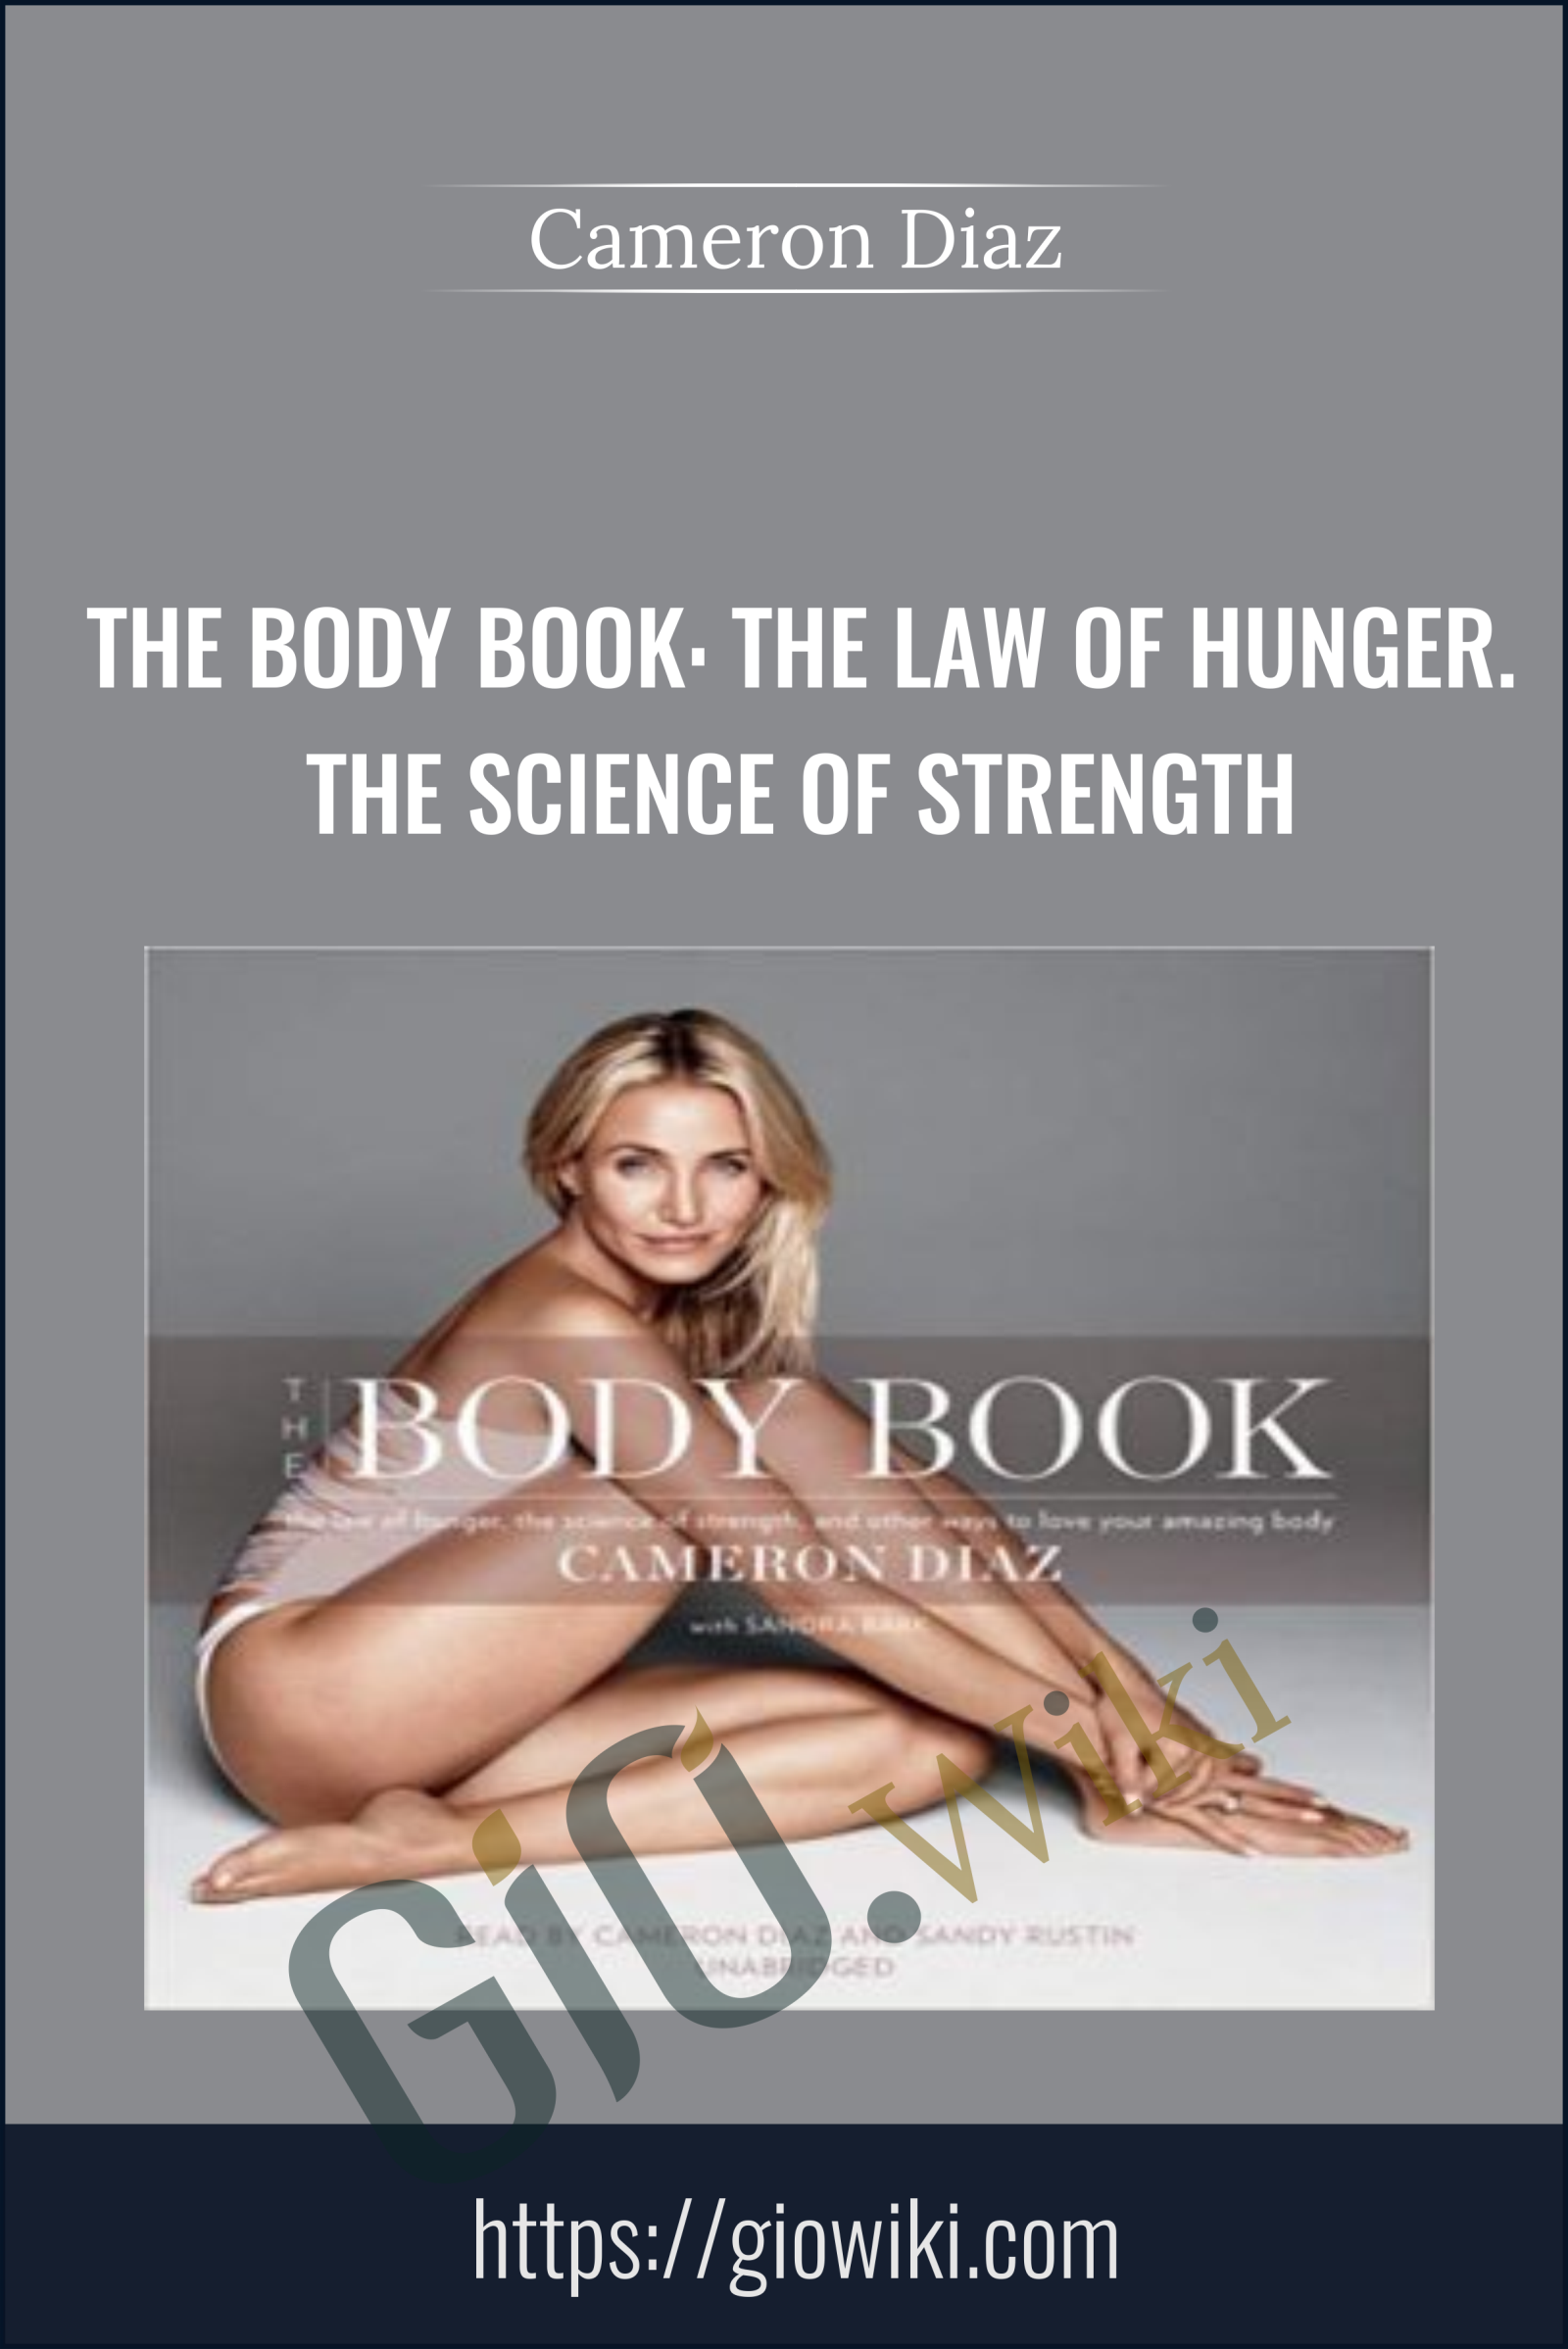 The Body Book: The Law of Hunger. the Science of Strength - Cameron Diaz